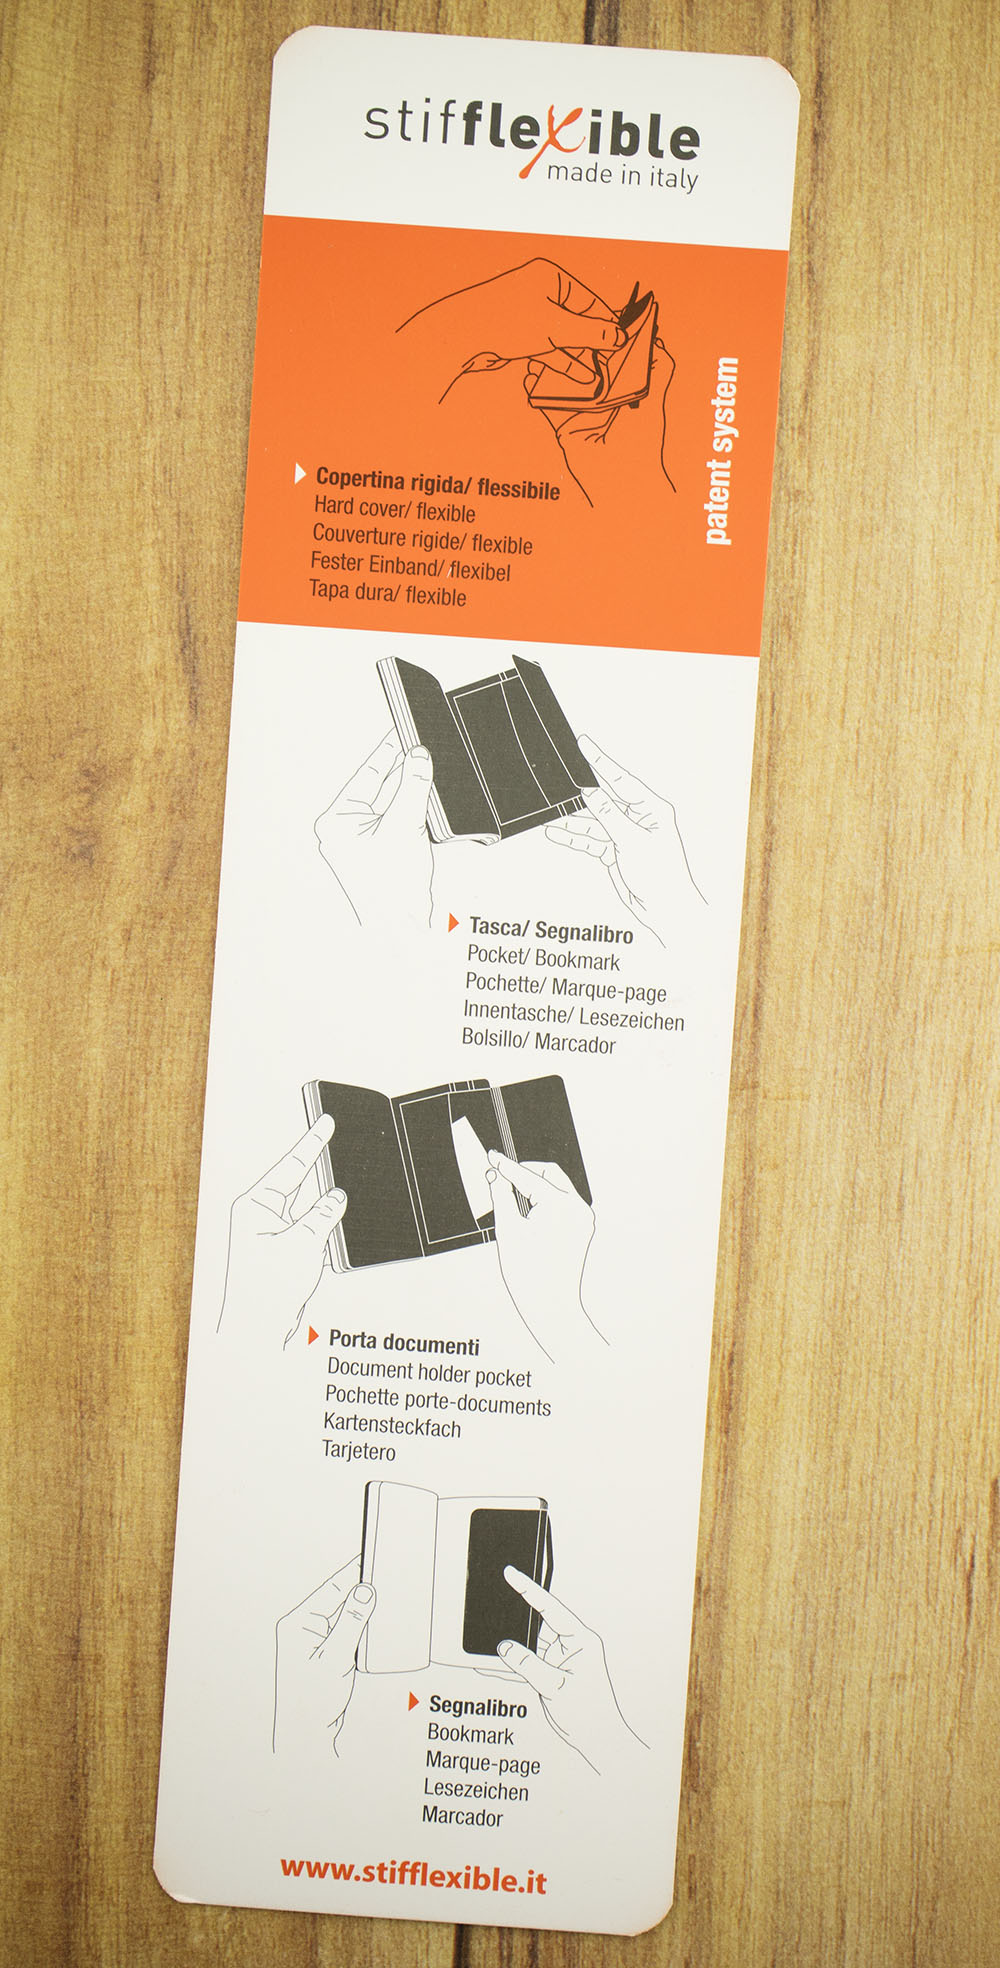 Stifflexible bookmark